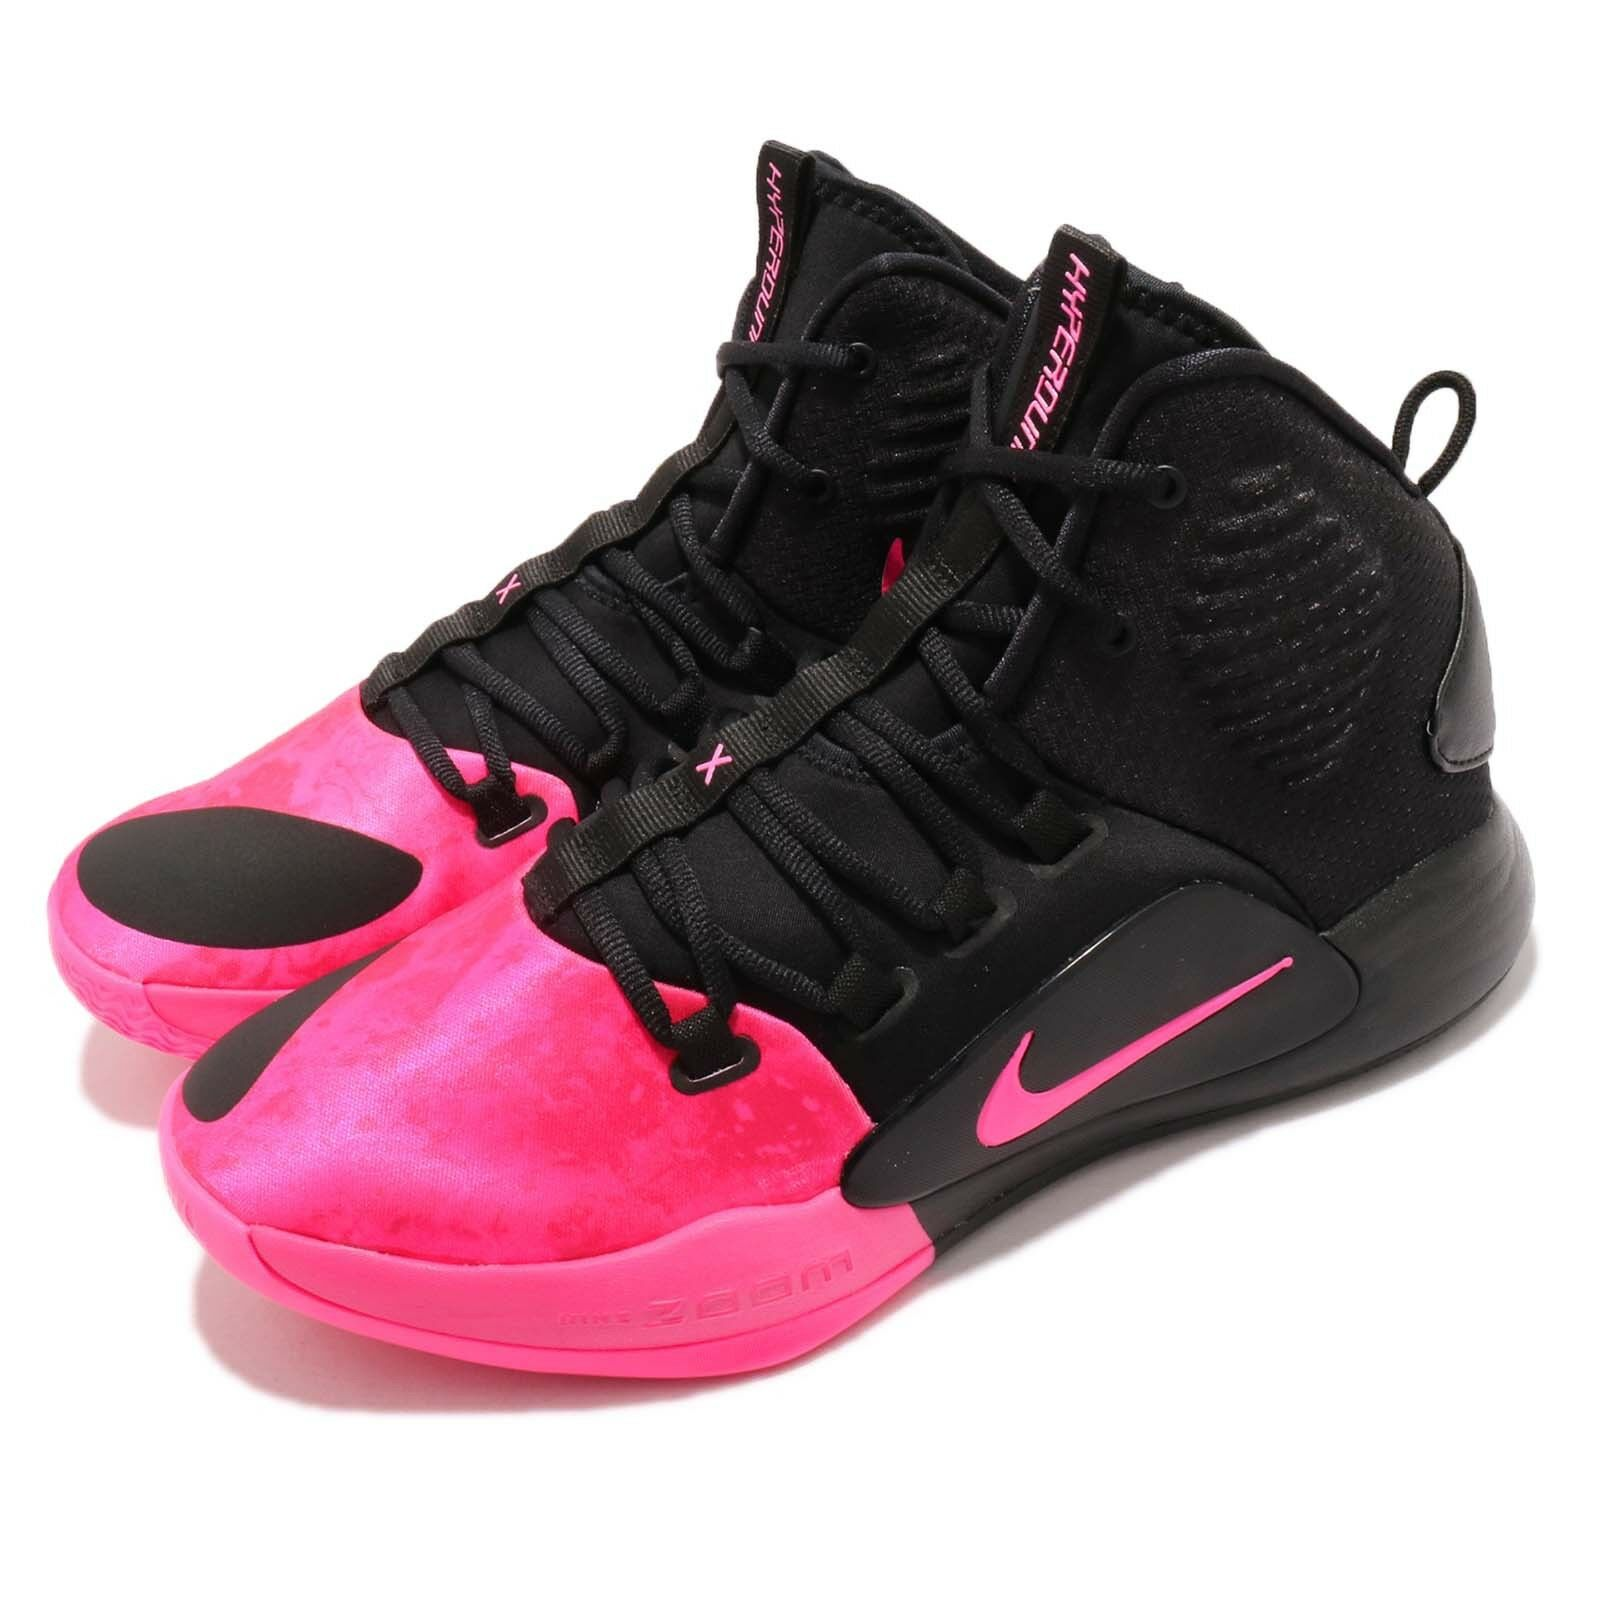 separation shoes a9049 e1344 ... where to buy nike hyperdunk x kay tu pe 10 uomini da basket rosa nero  av2059